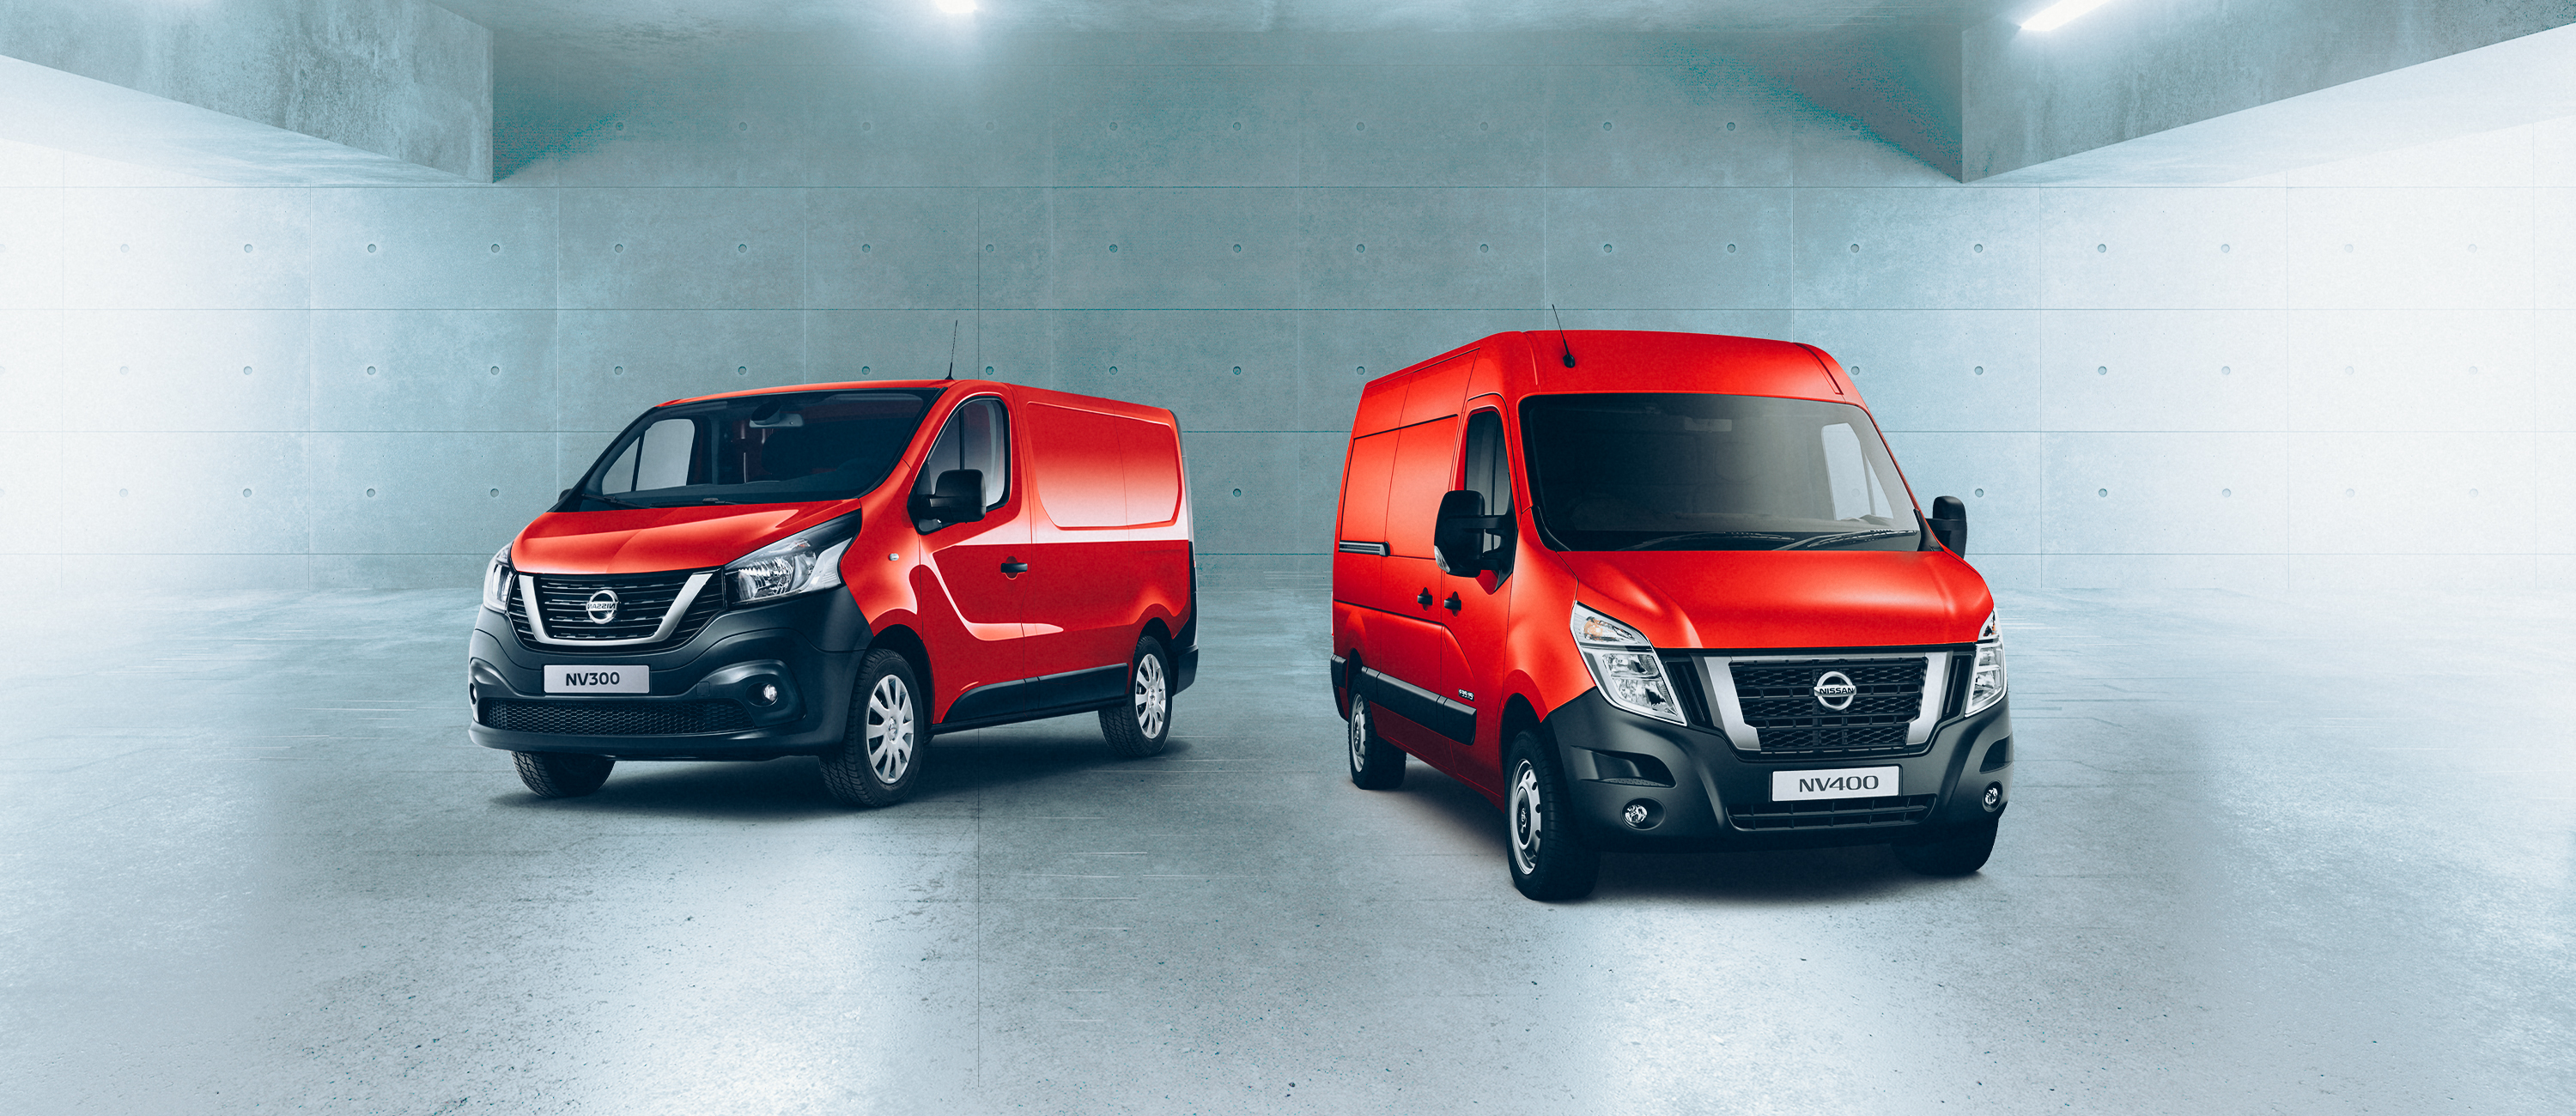 The Nissan Van Plan